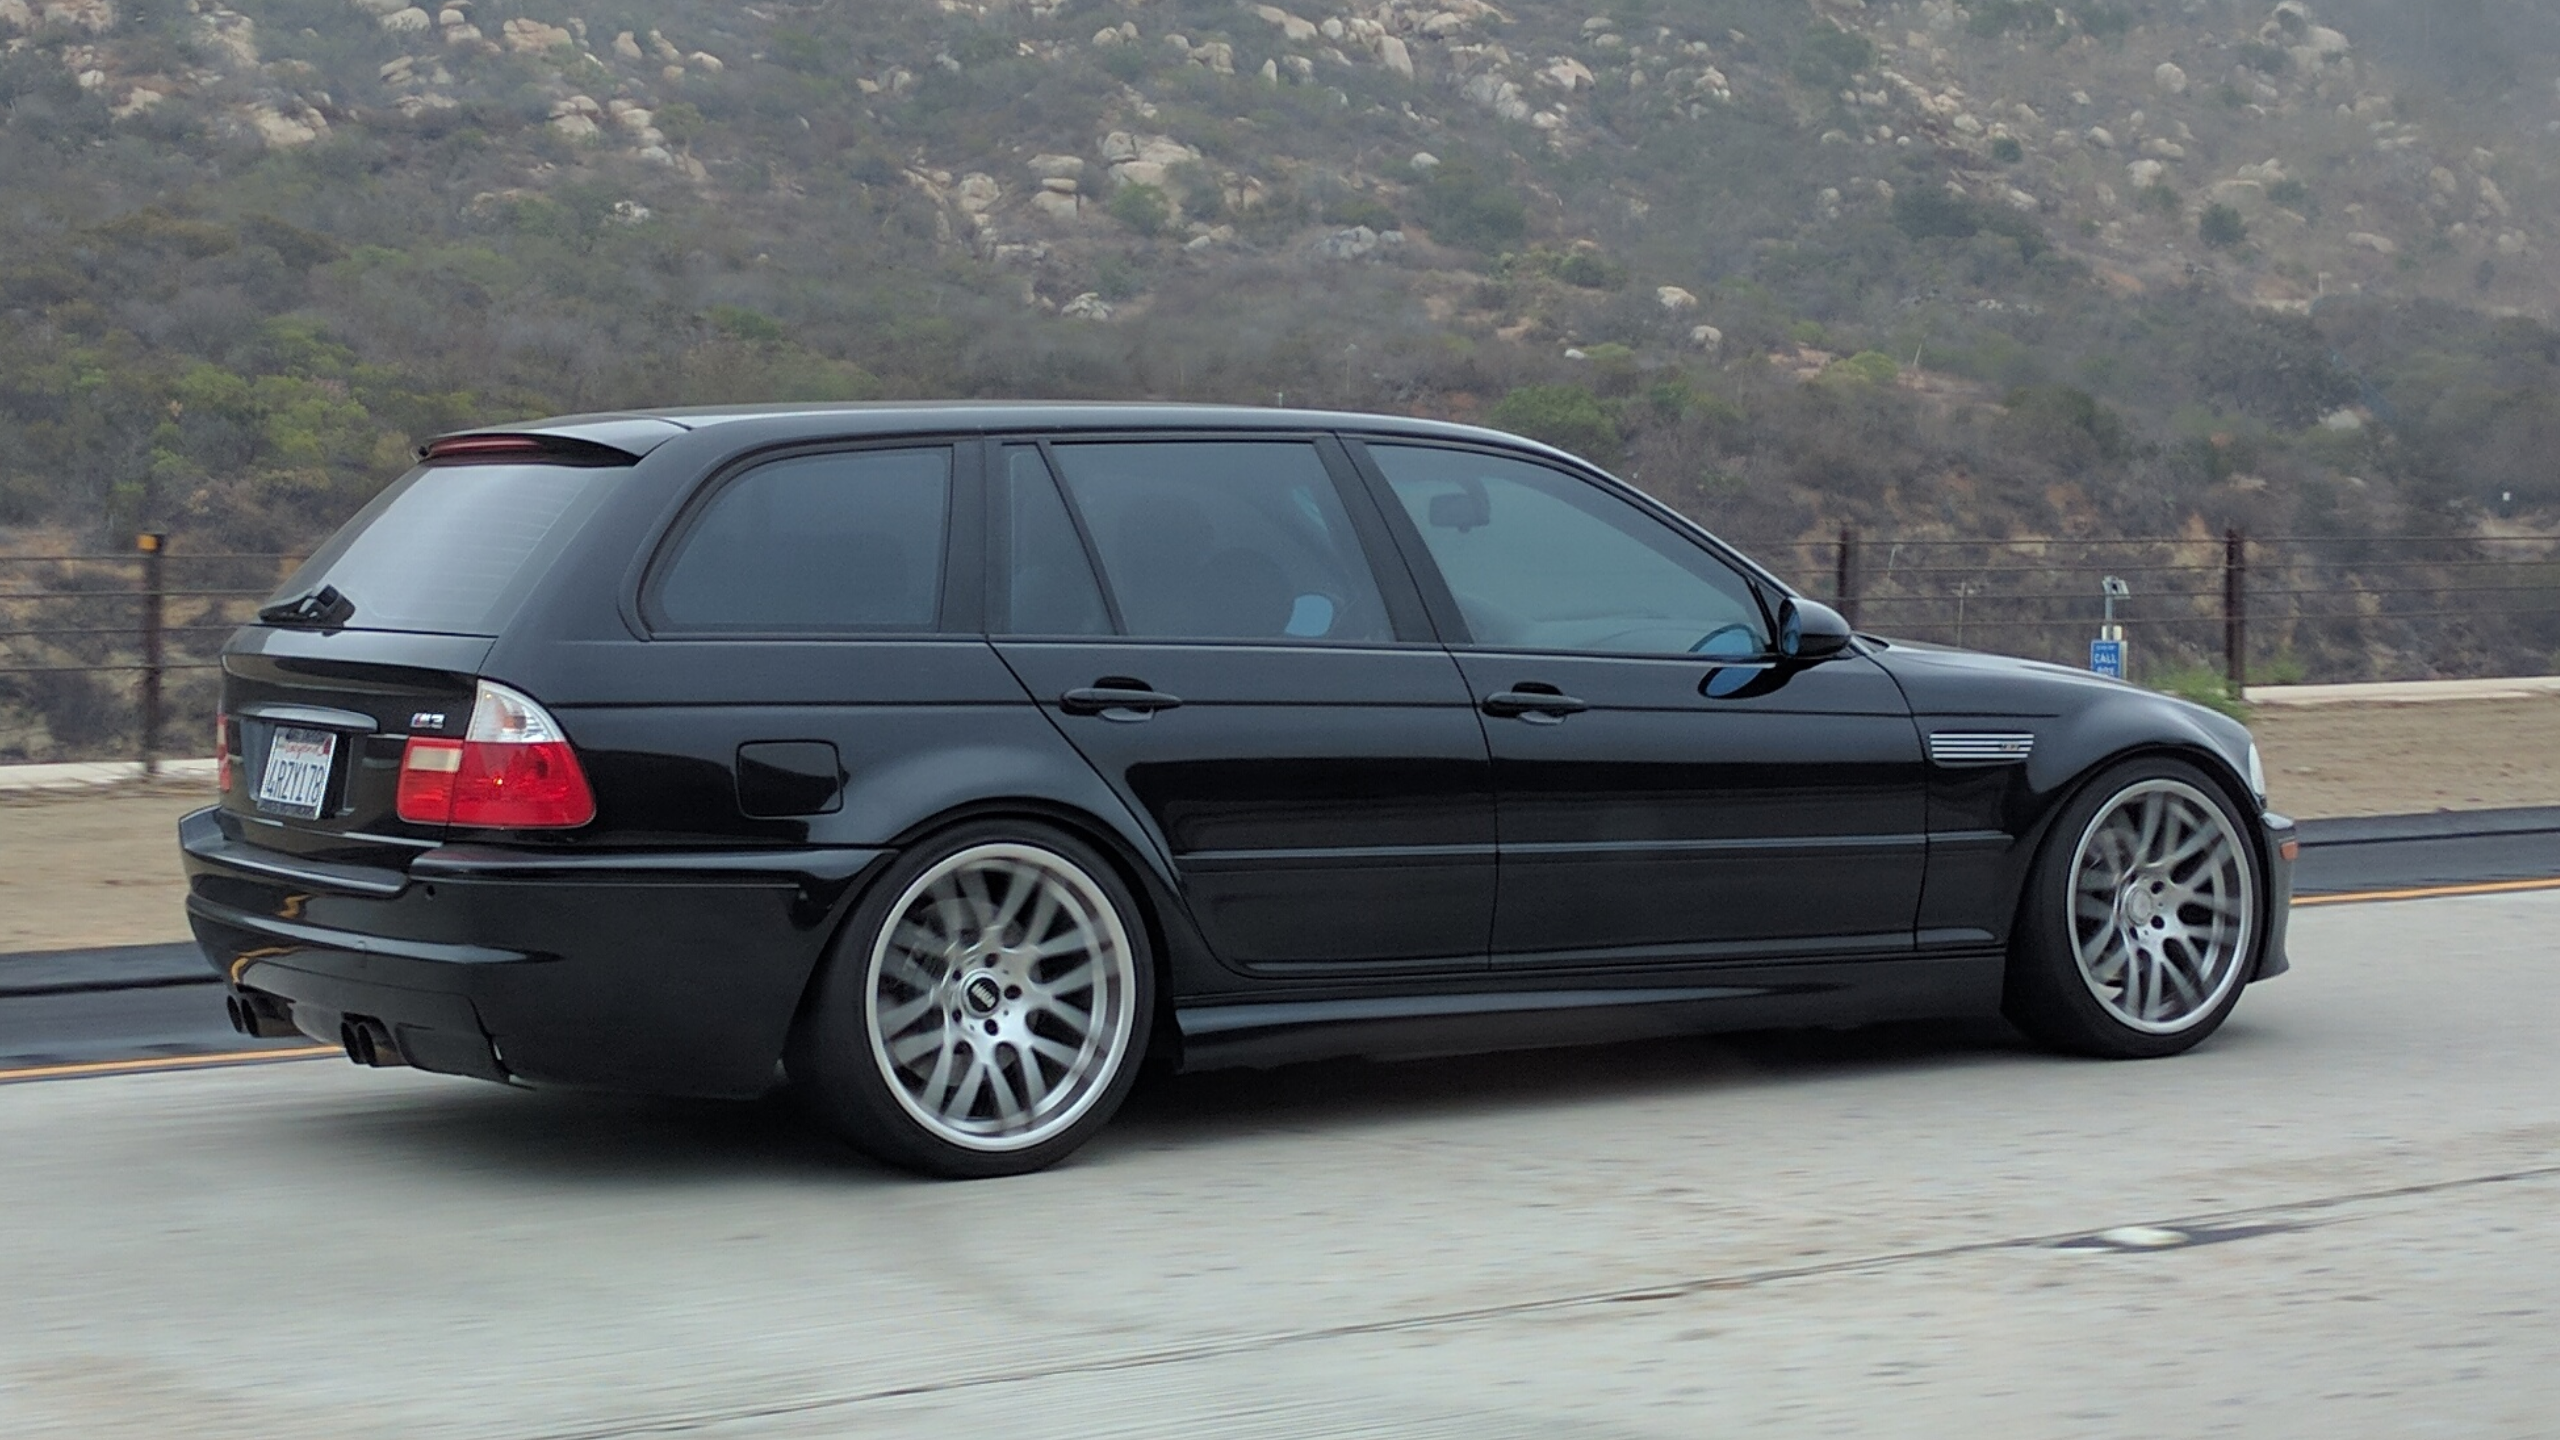 Spotted This E46 M3 Touring Today Accelerate Bmw E39 Touring